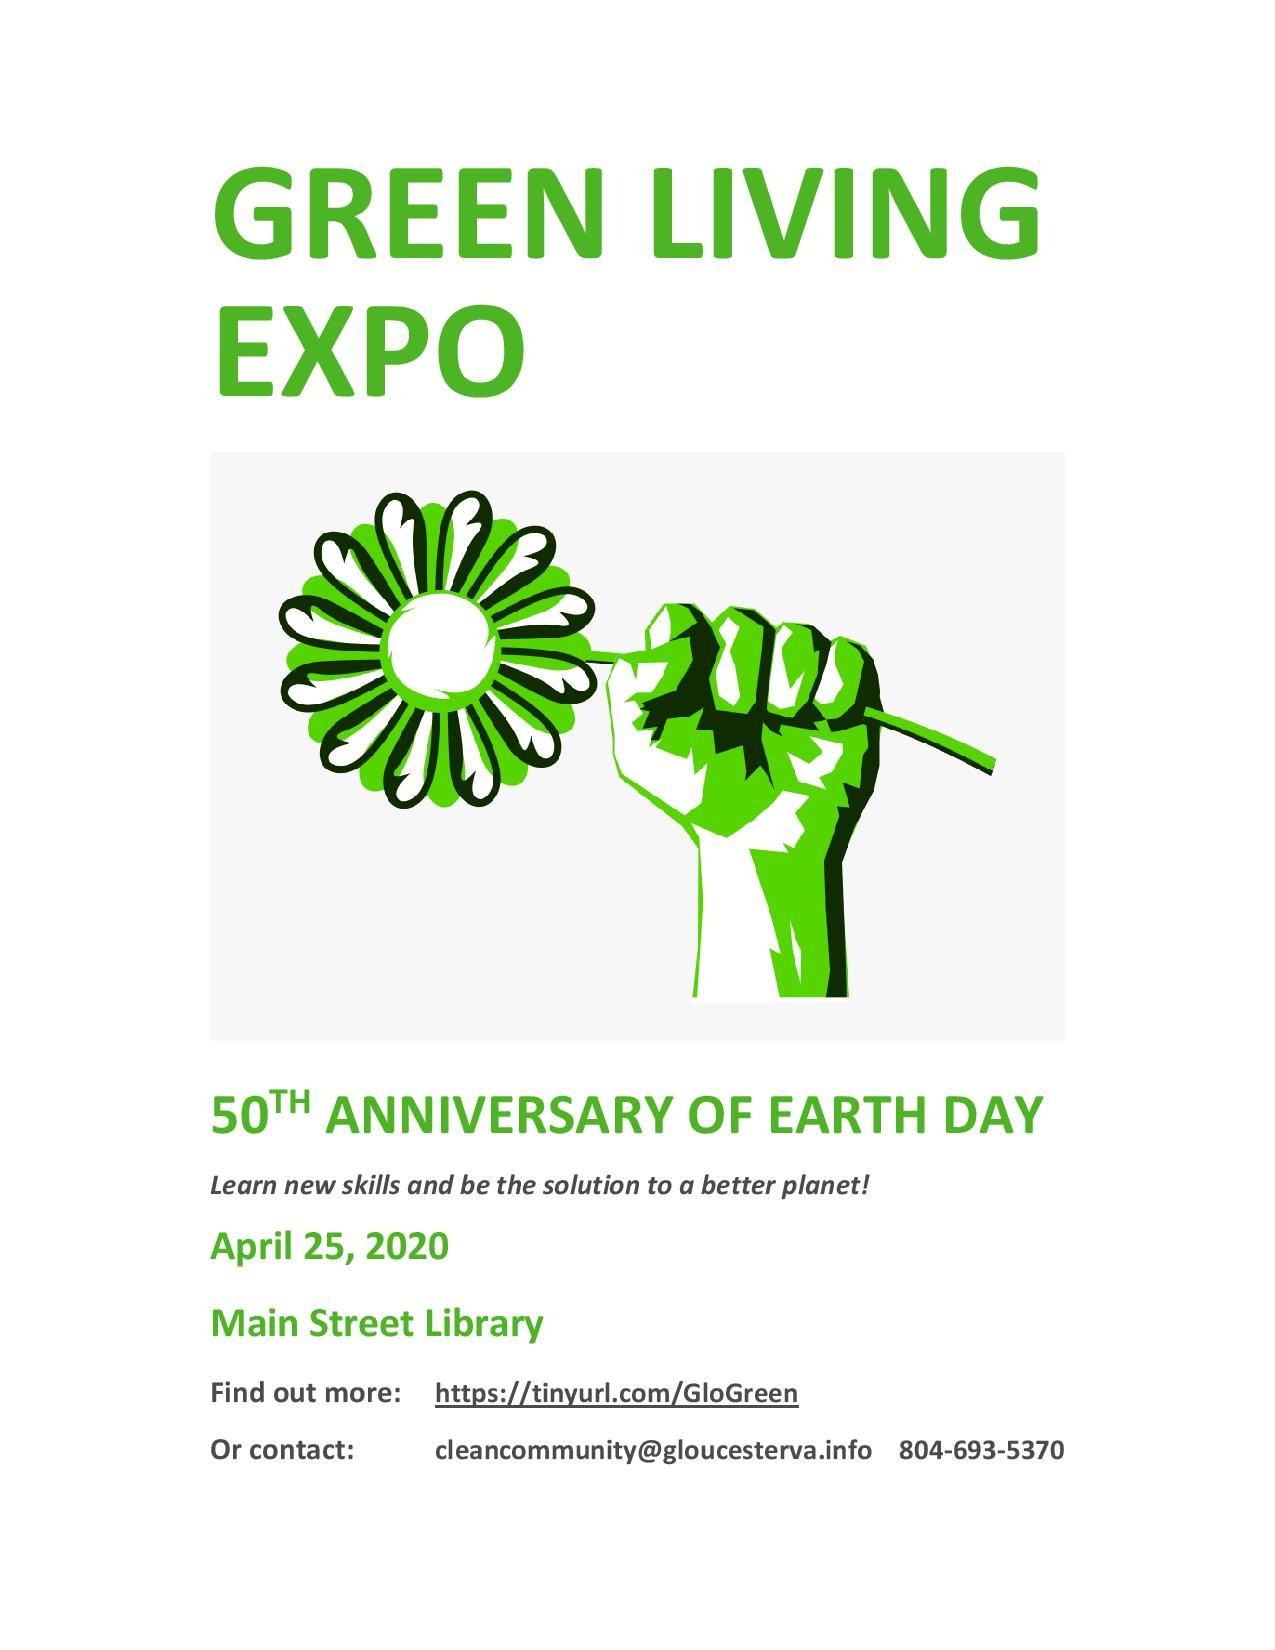 Green Living Expo 2020 flyer